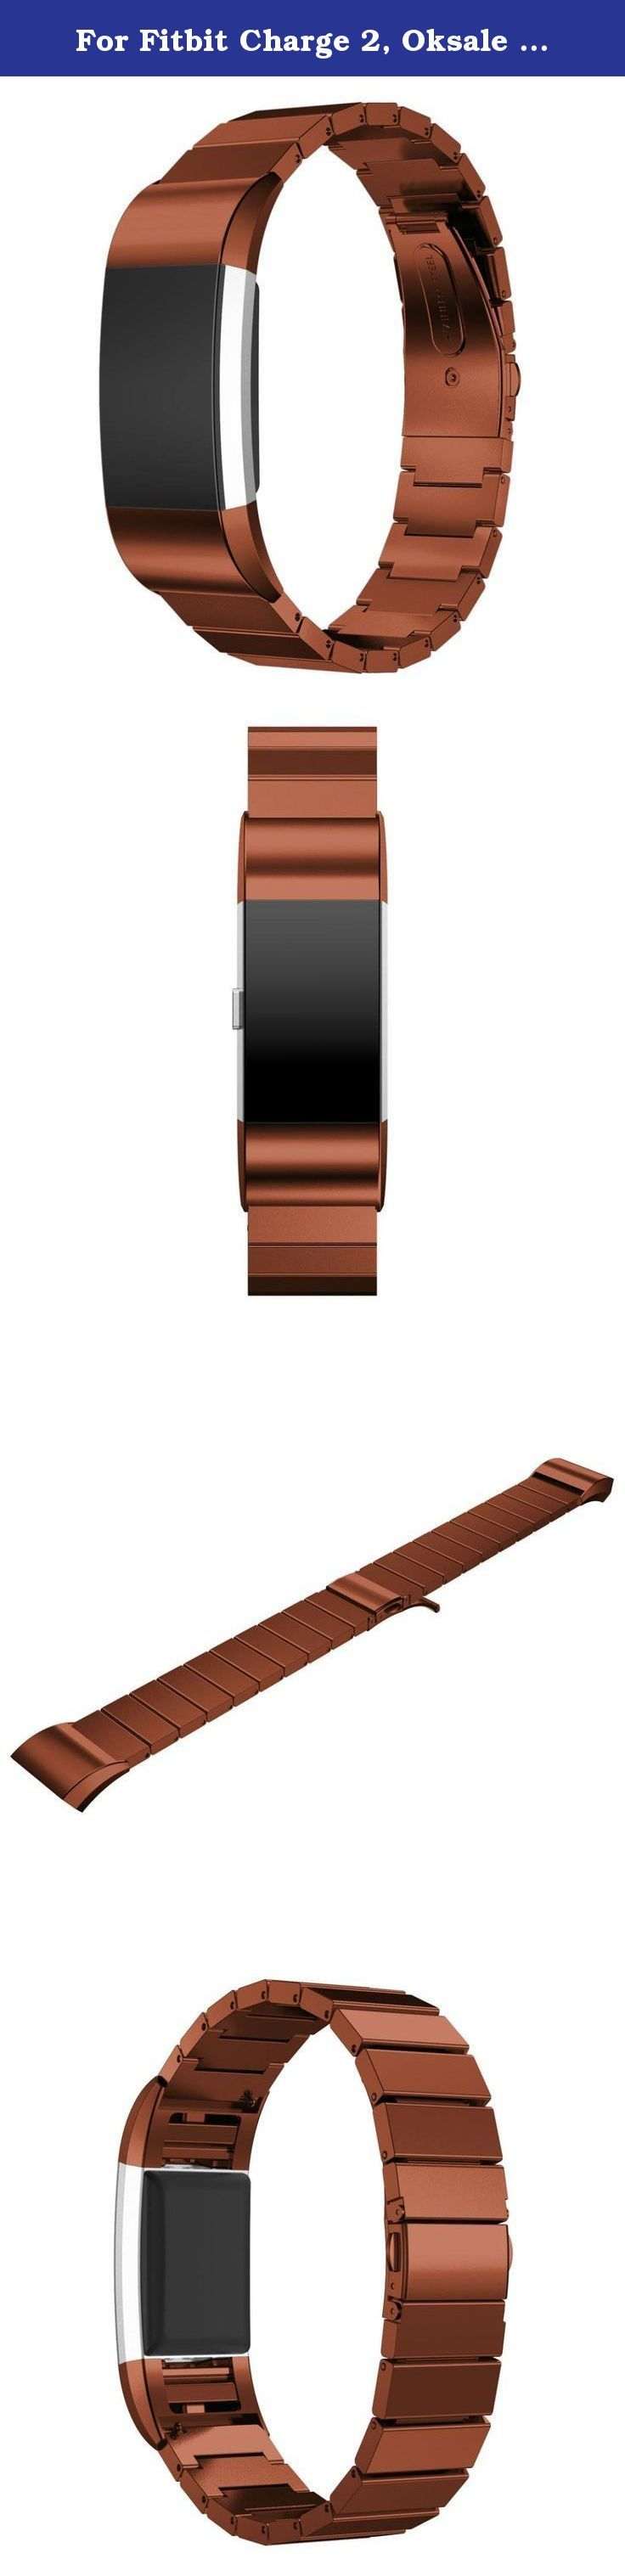 For Fitbit Charge 2, Oksale Genuine Stainless Steel Adjustable Smart Watch Bracelet Wrist Strap Band (Coffee). Features: Softness is moderate, wear very comfortable Sturdy and durable The size can be adjusted according to the circumstance of individual wrist Material: Stainless Steel Large Strap length:170-220mm Compatible for Fitbit Charge 2 Package Include: 1pc Genuine Stainless Steel Bracelet Smart Watch Band Strap For Fitbit Charge 2 (without retail package).